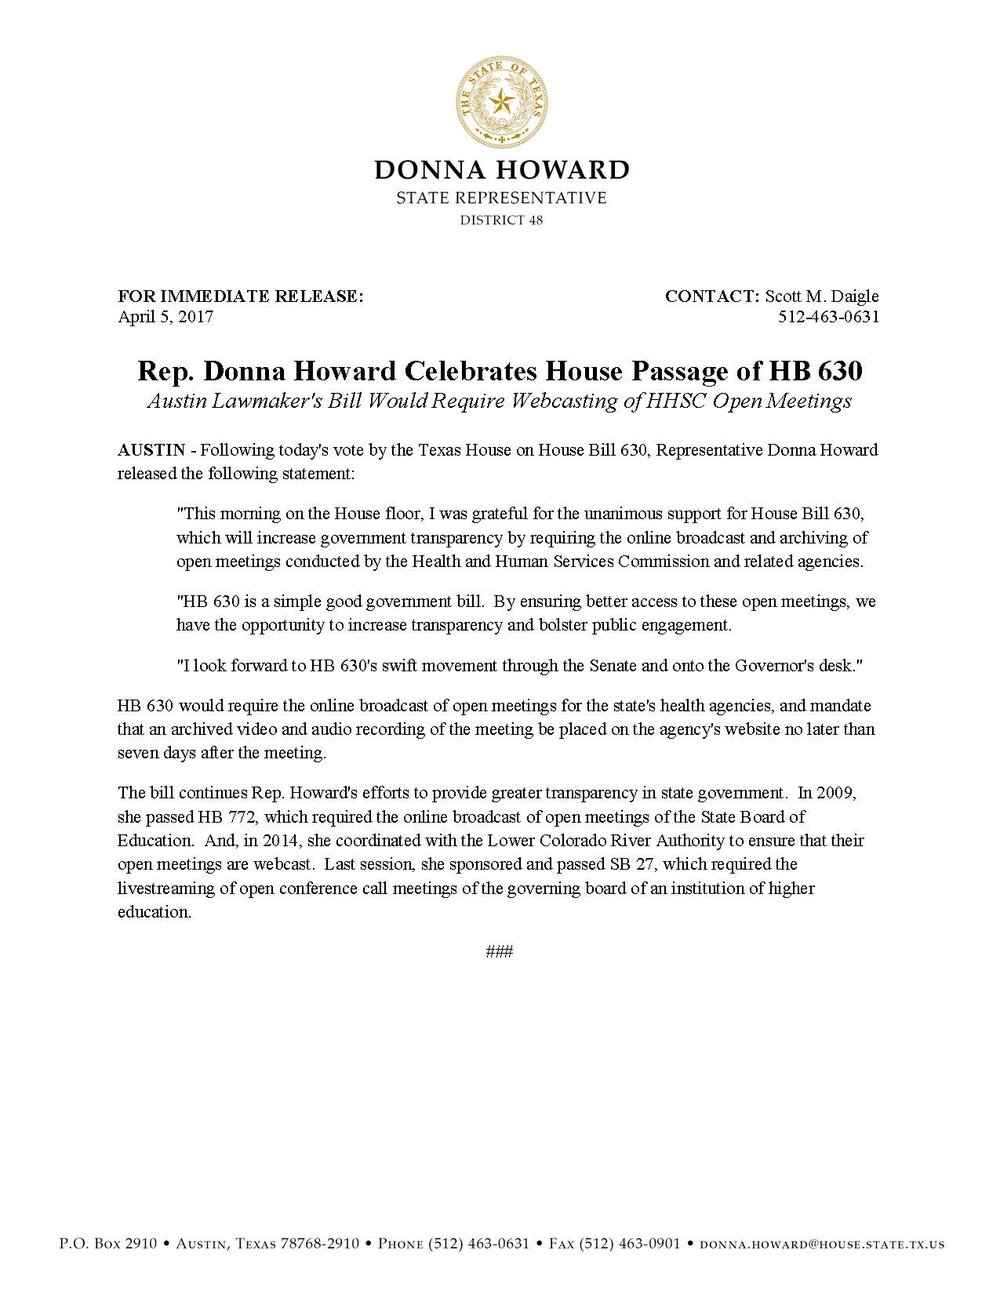 Rep. Donna Howard_Statement on HB 630 House Passage_04.05.2017